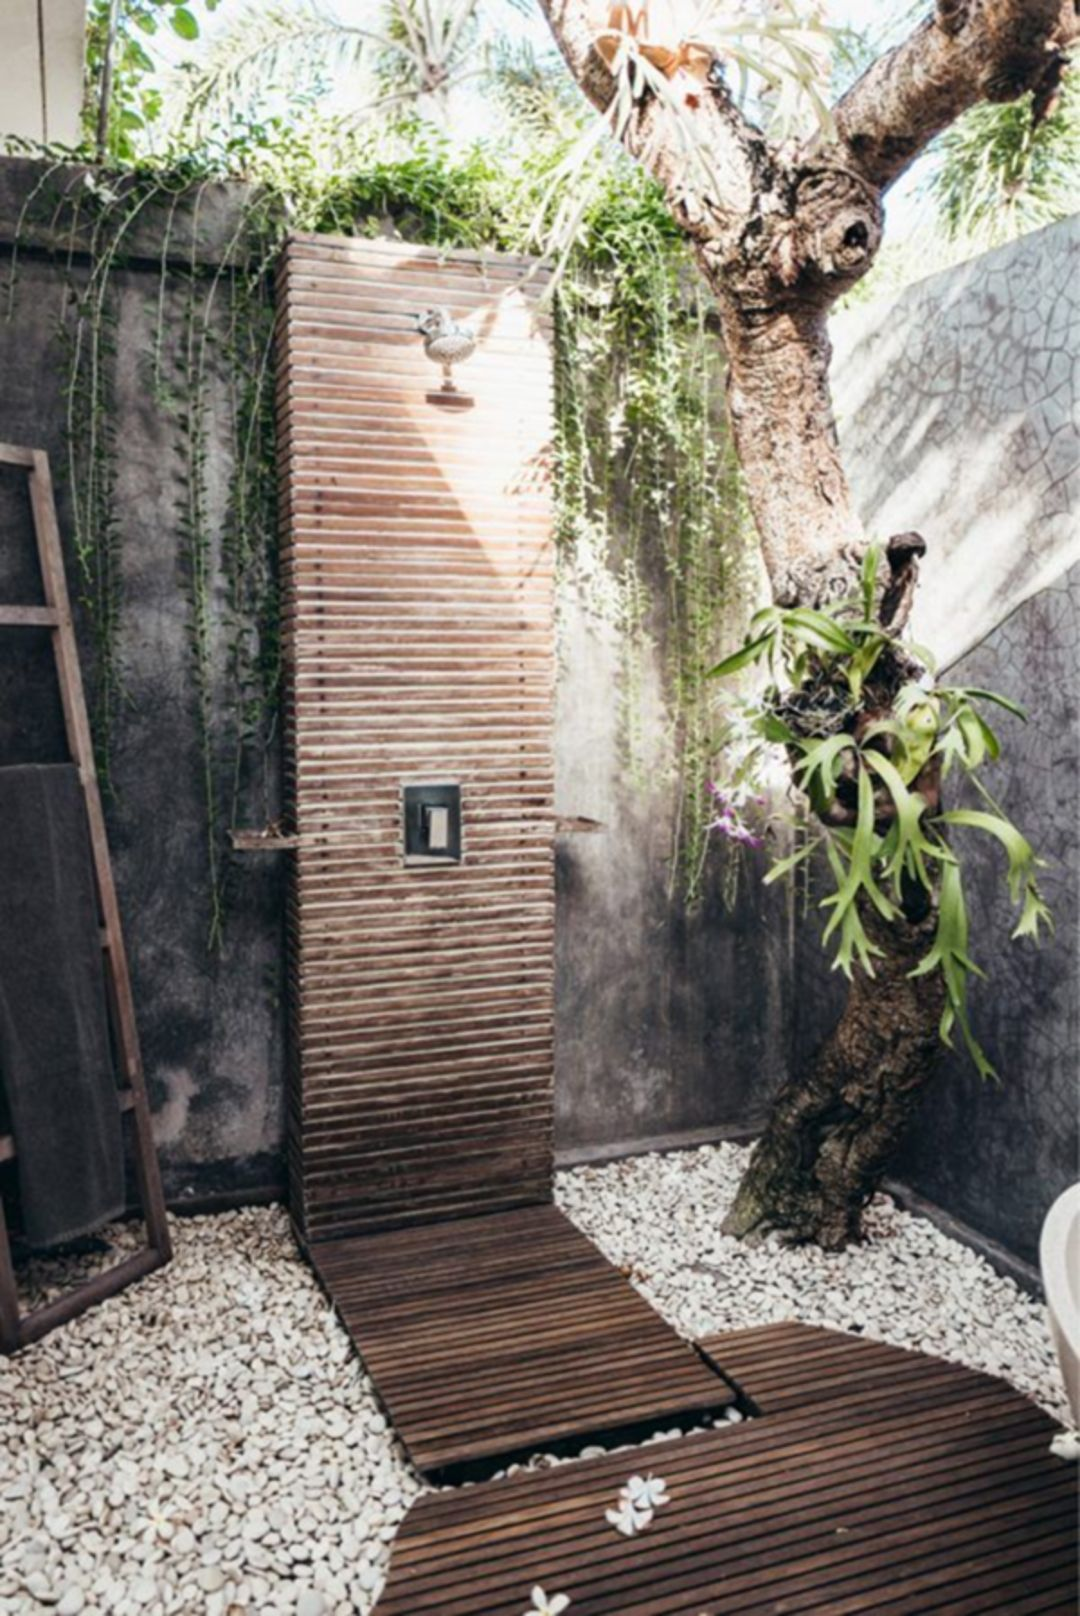 30 Gorgeous Outdoor Bathroom Design Ideas Leaving You Feeling Refreshed is part of Gorgeous Outdoor Bathroom Design Ideas Leaving You Feeling - The bathroom is a part of the house that has an important function, in fact, it seems that no house does not h